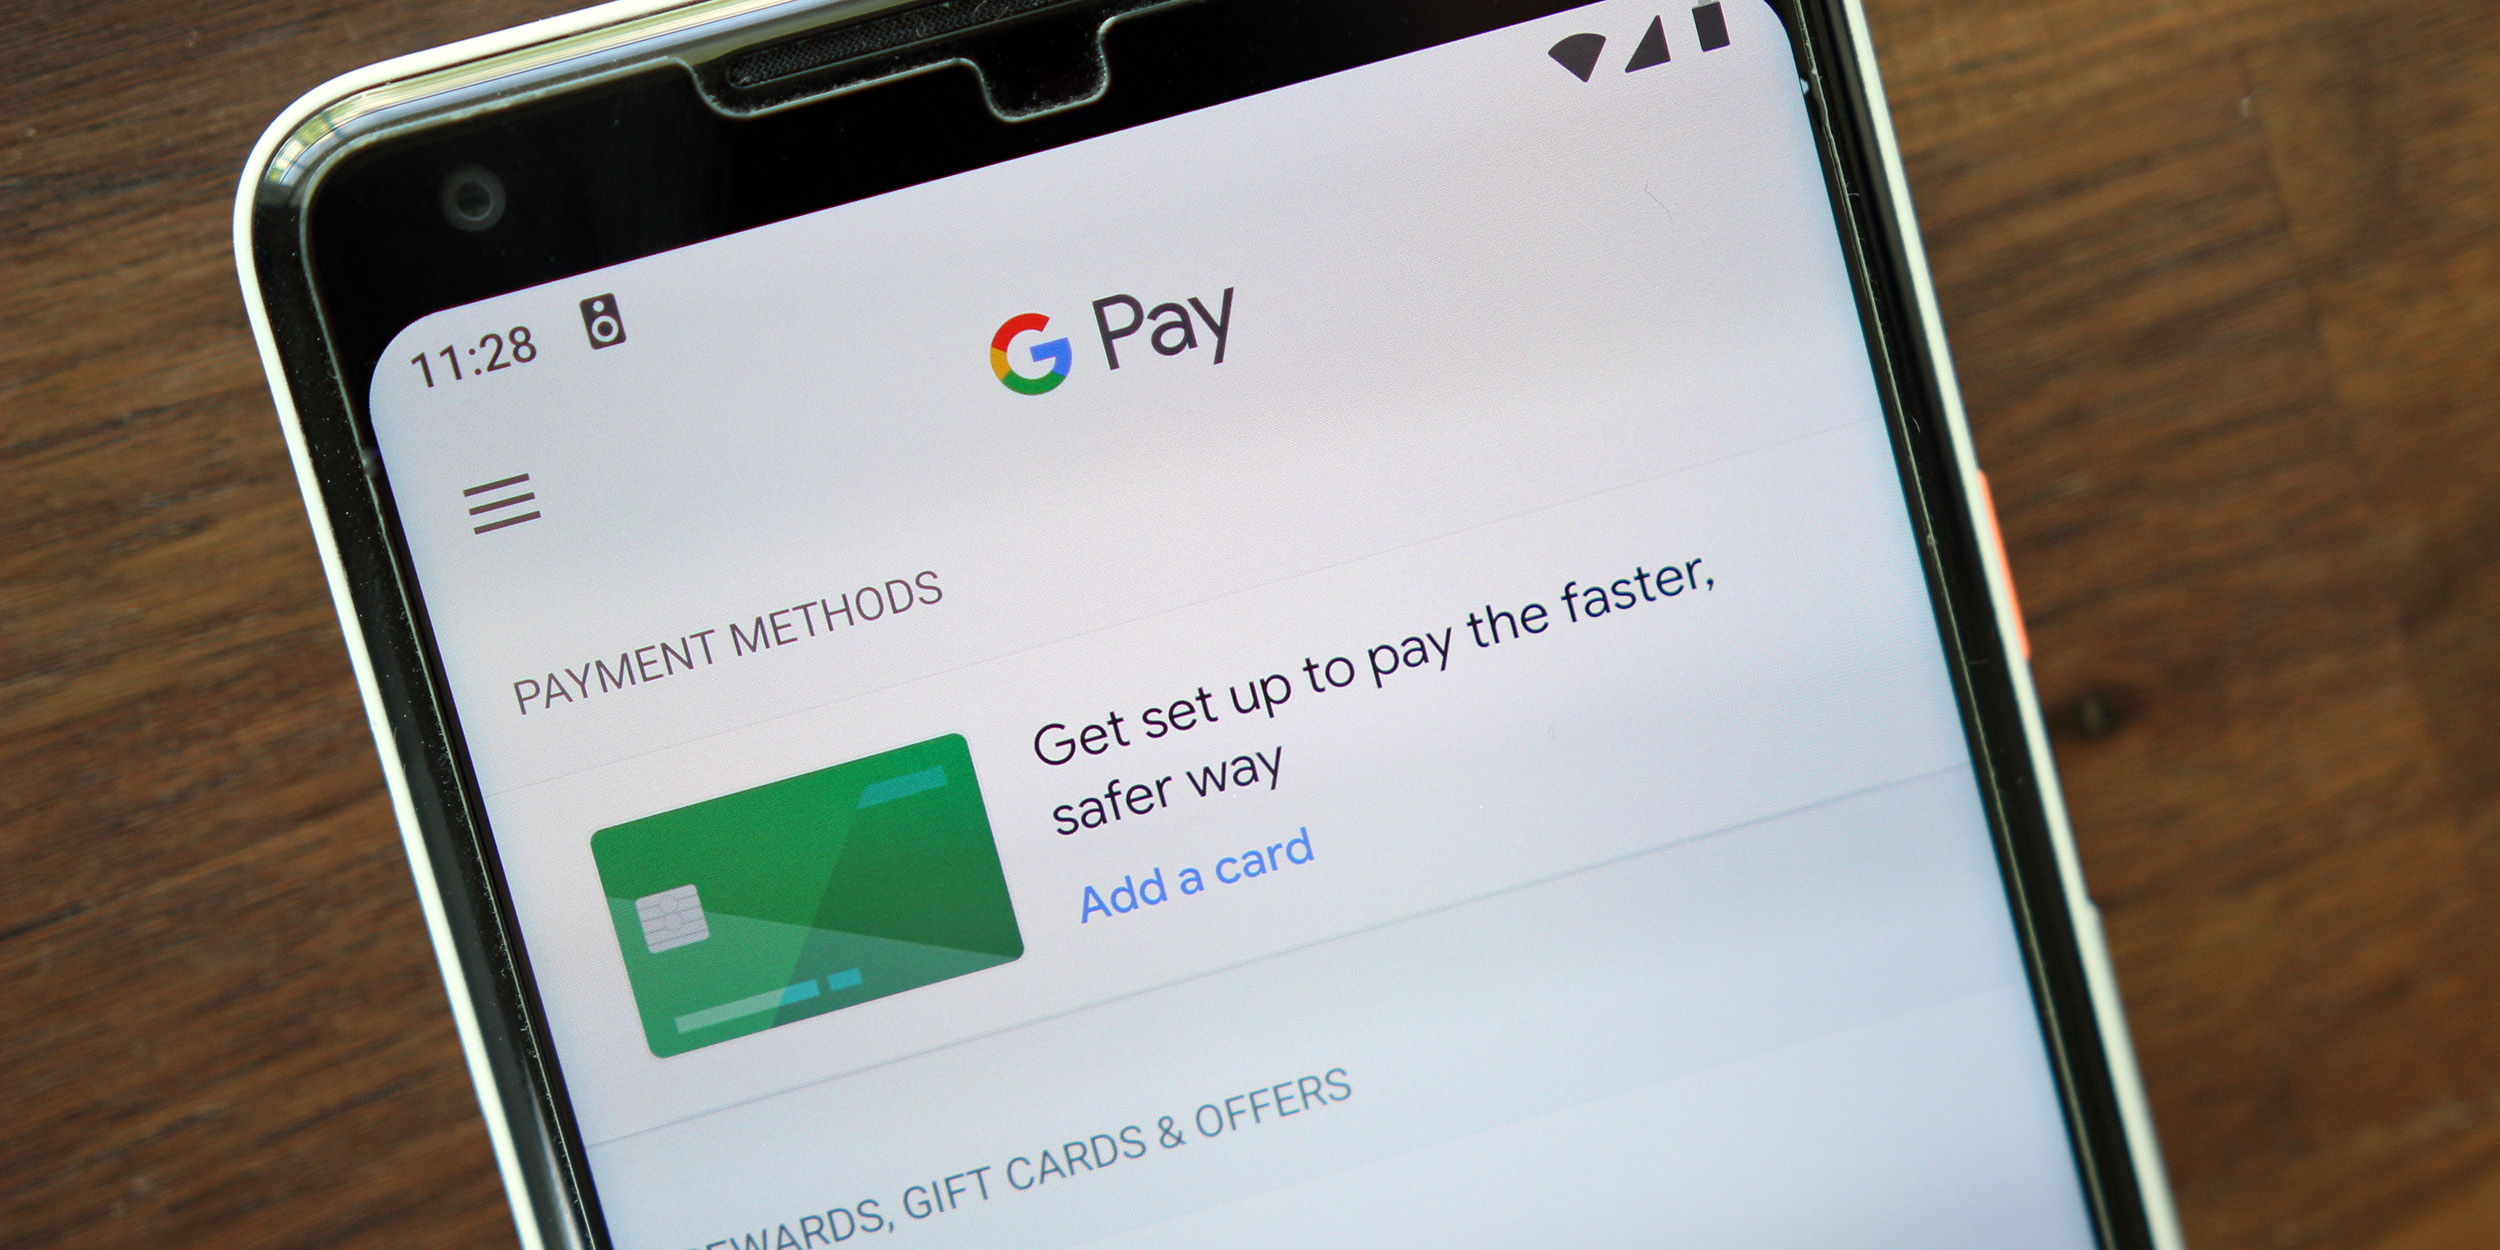 Google Pay has added 29 banks in the US in December 2018